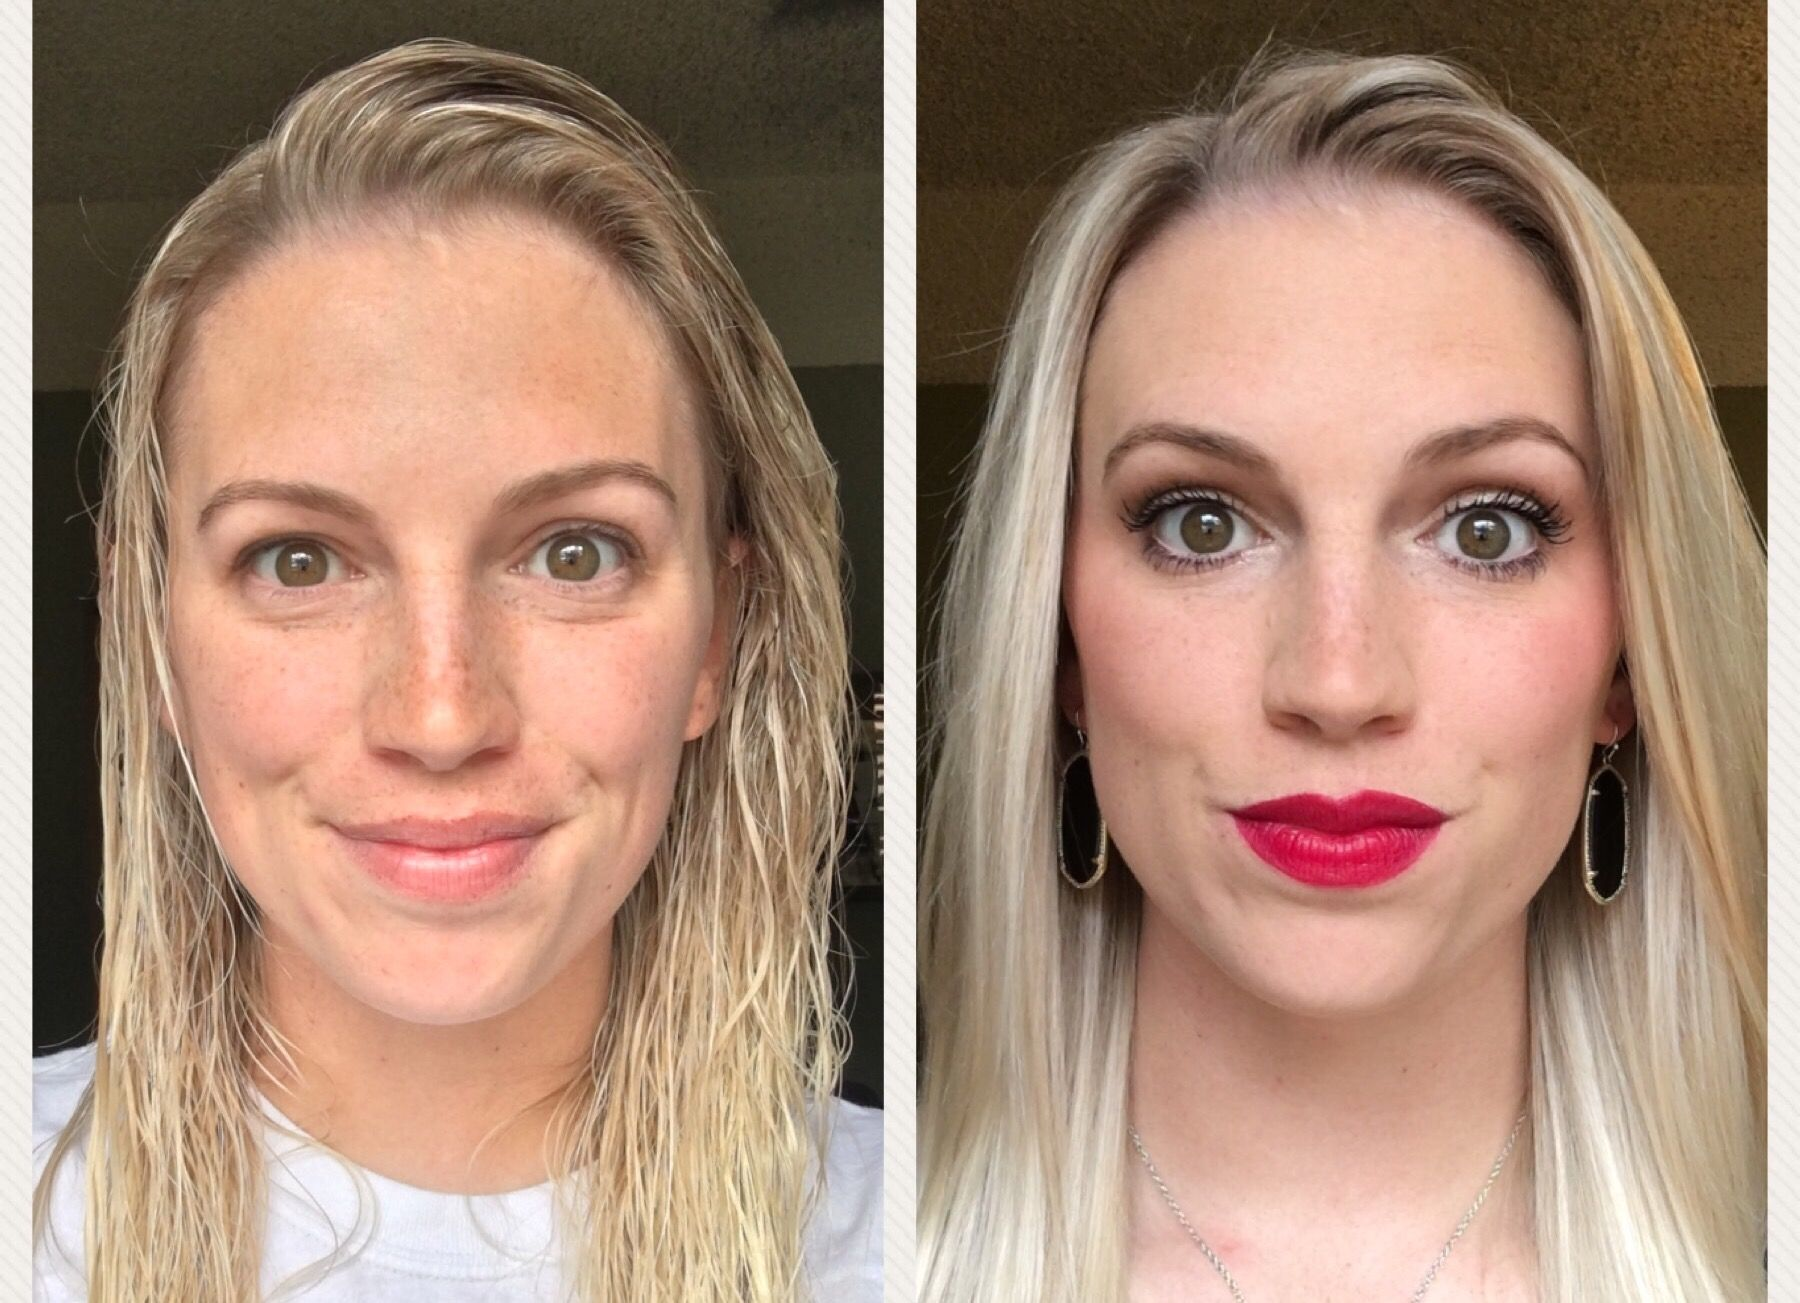 Before and after using only Younique makeup! Natural